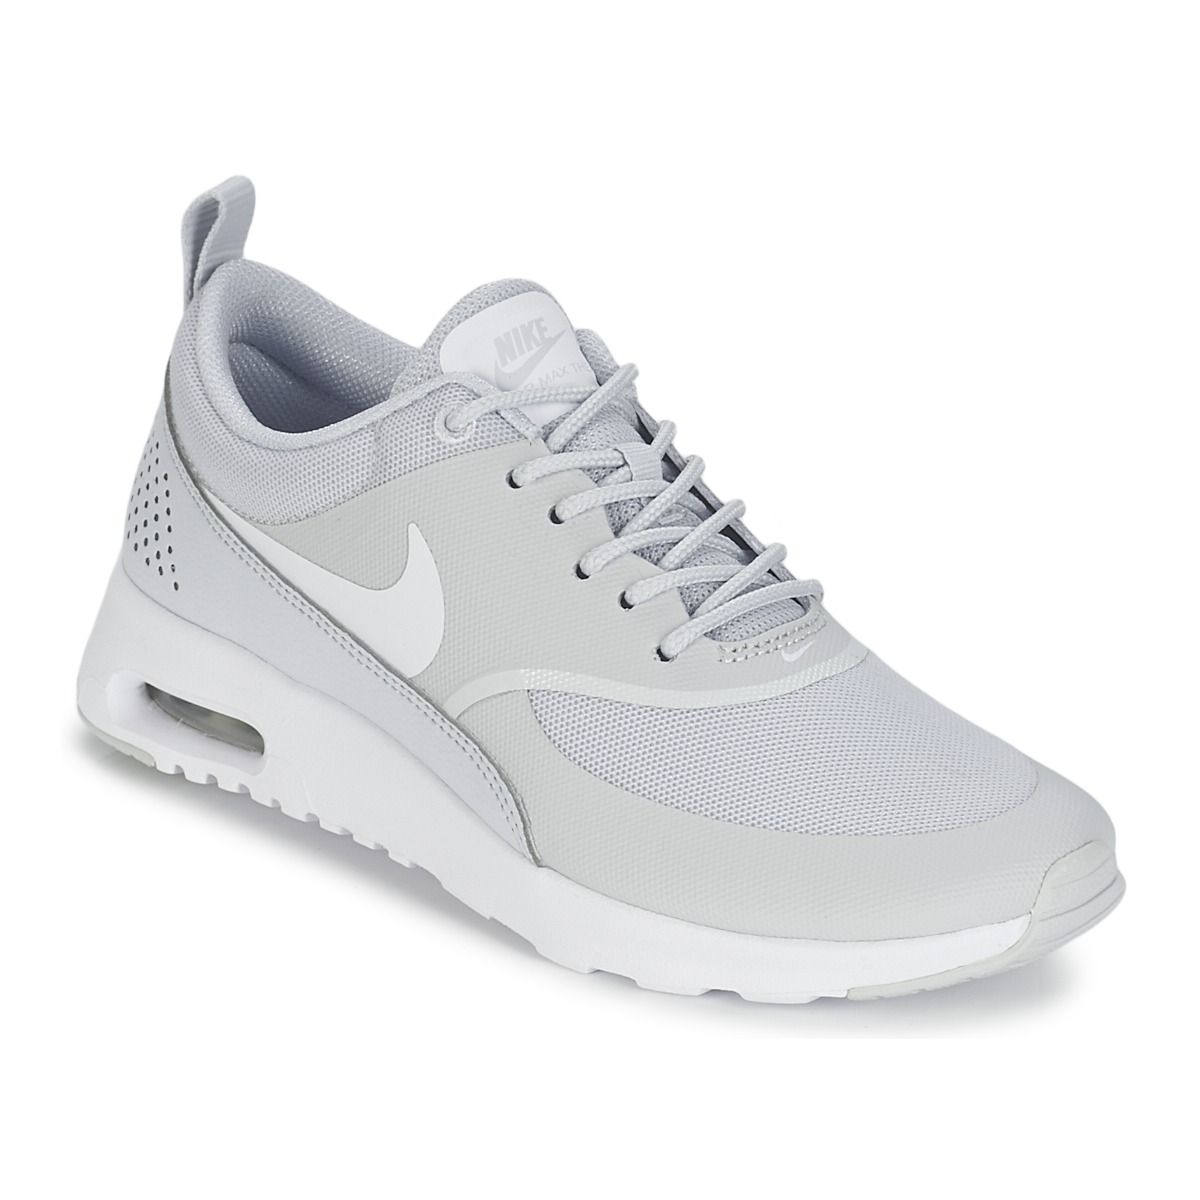 baskets basses nike air max thea w gris prix promo baskets femme spartoo shoes. Black Bedroom Furniture Sets. Home Design Ideas